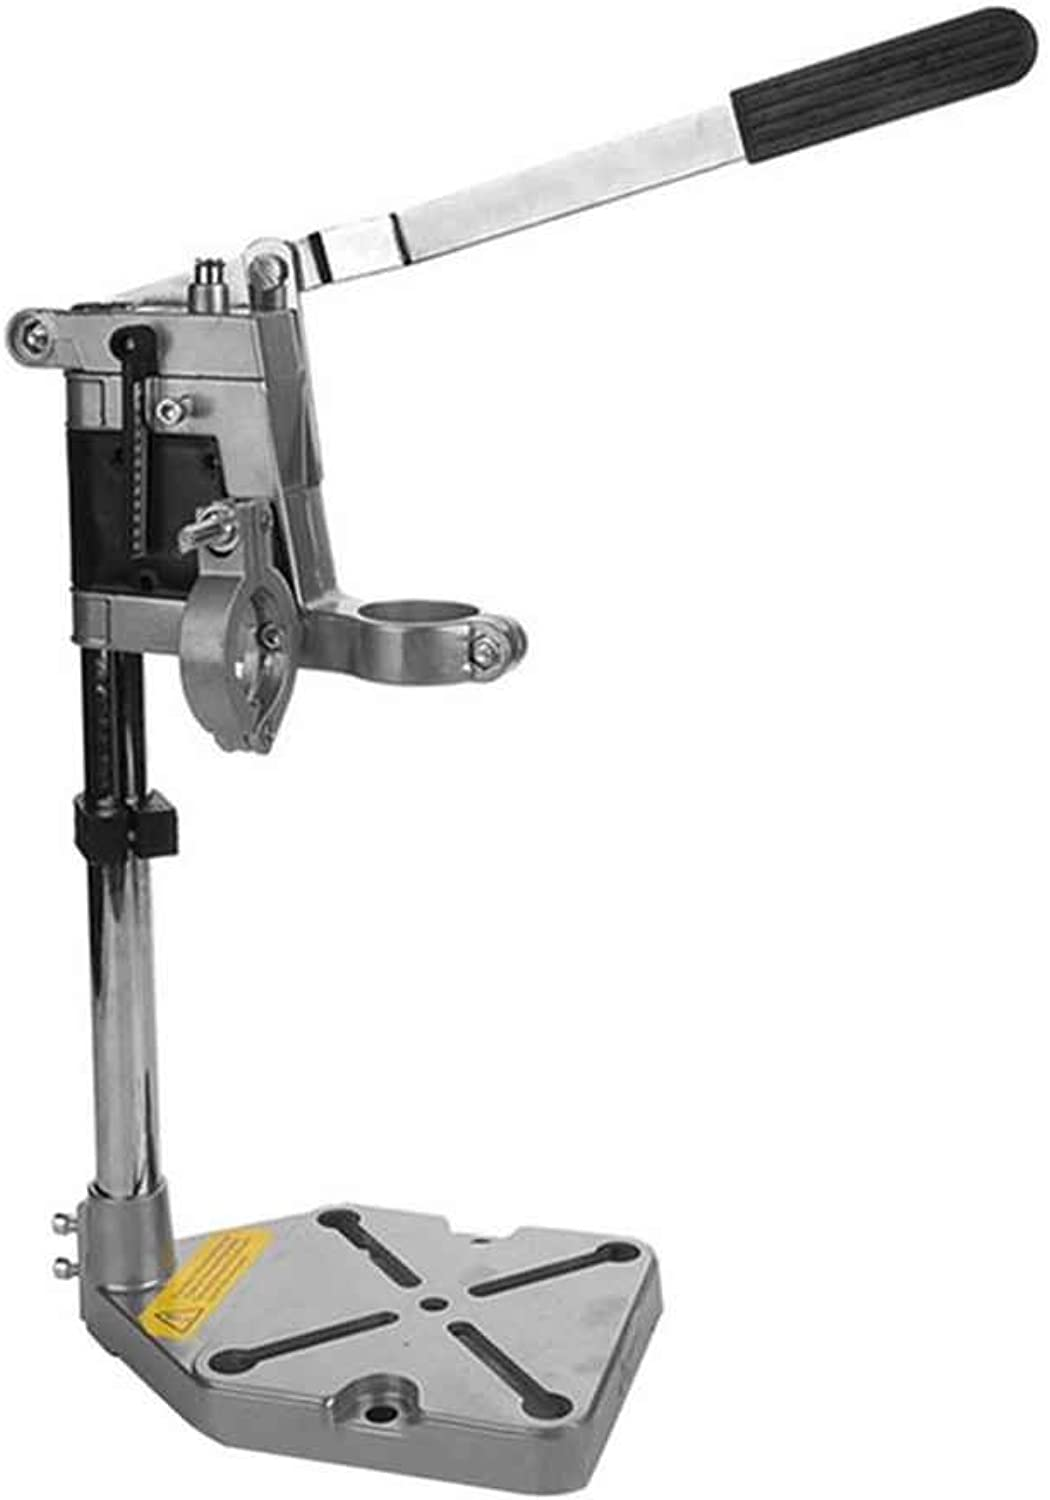 Mengonee Portable Universal Electric Bench Drill Stand Double Clamp Base Frame Drill Holder Stand B07DK66CH7 | Am wirtschaftlichsten